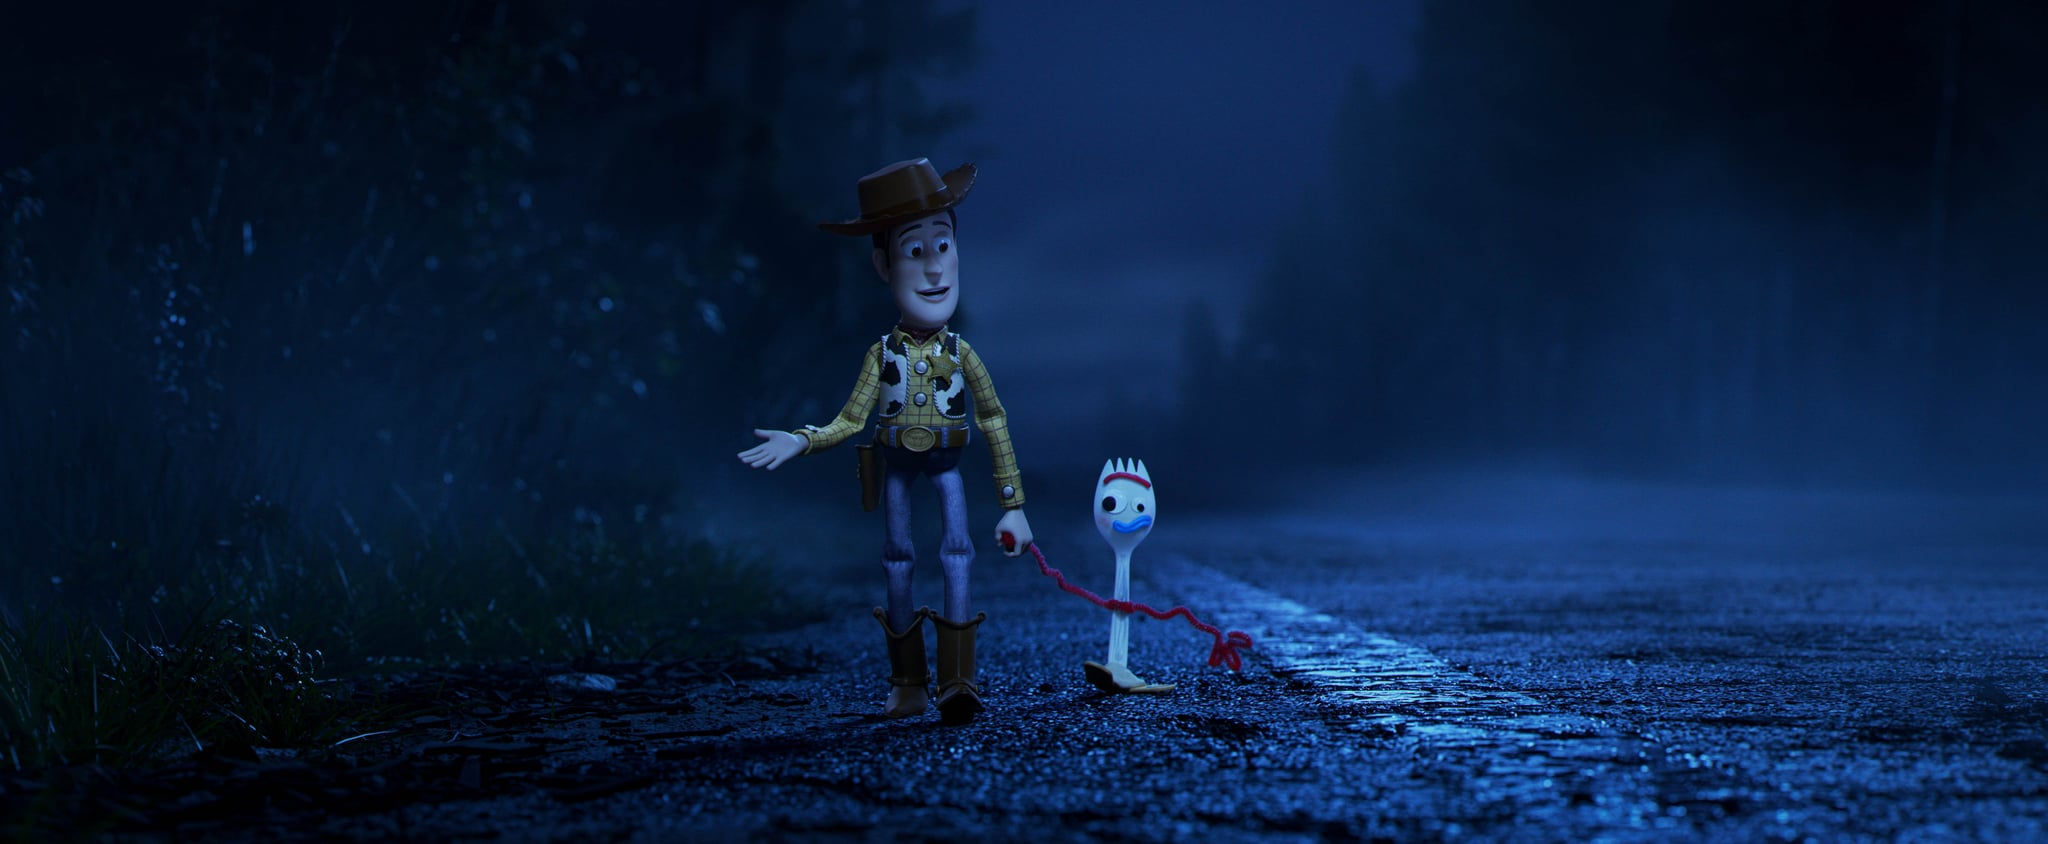 Woody Explaining What Toys Mean in Toy Story 4 Trailer Video